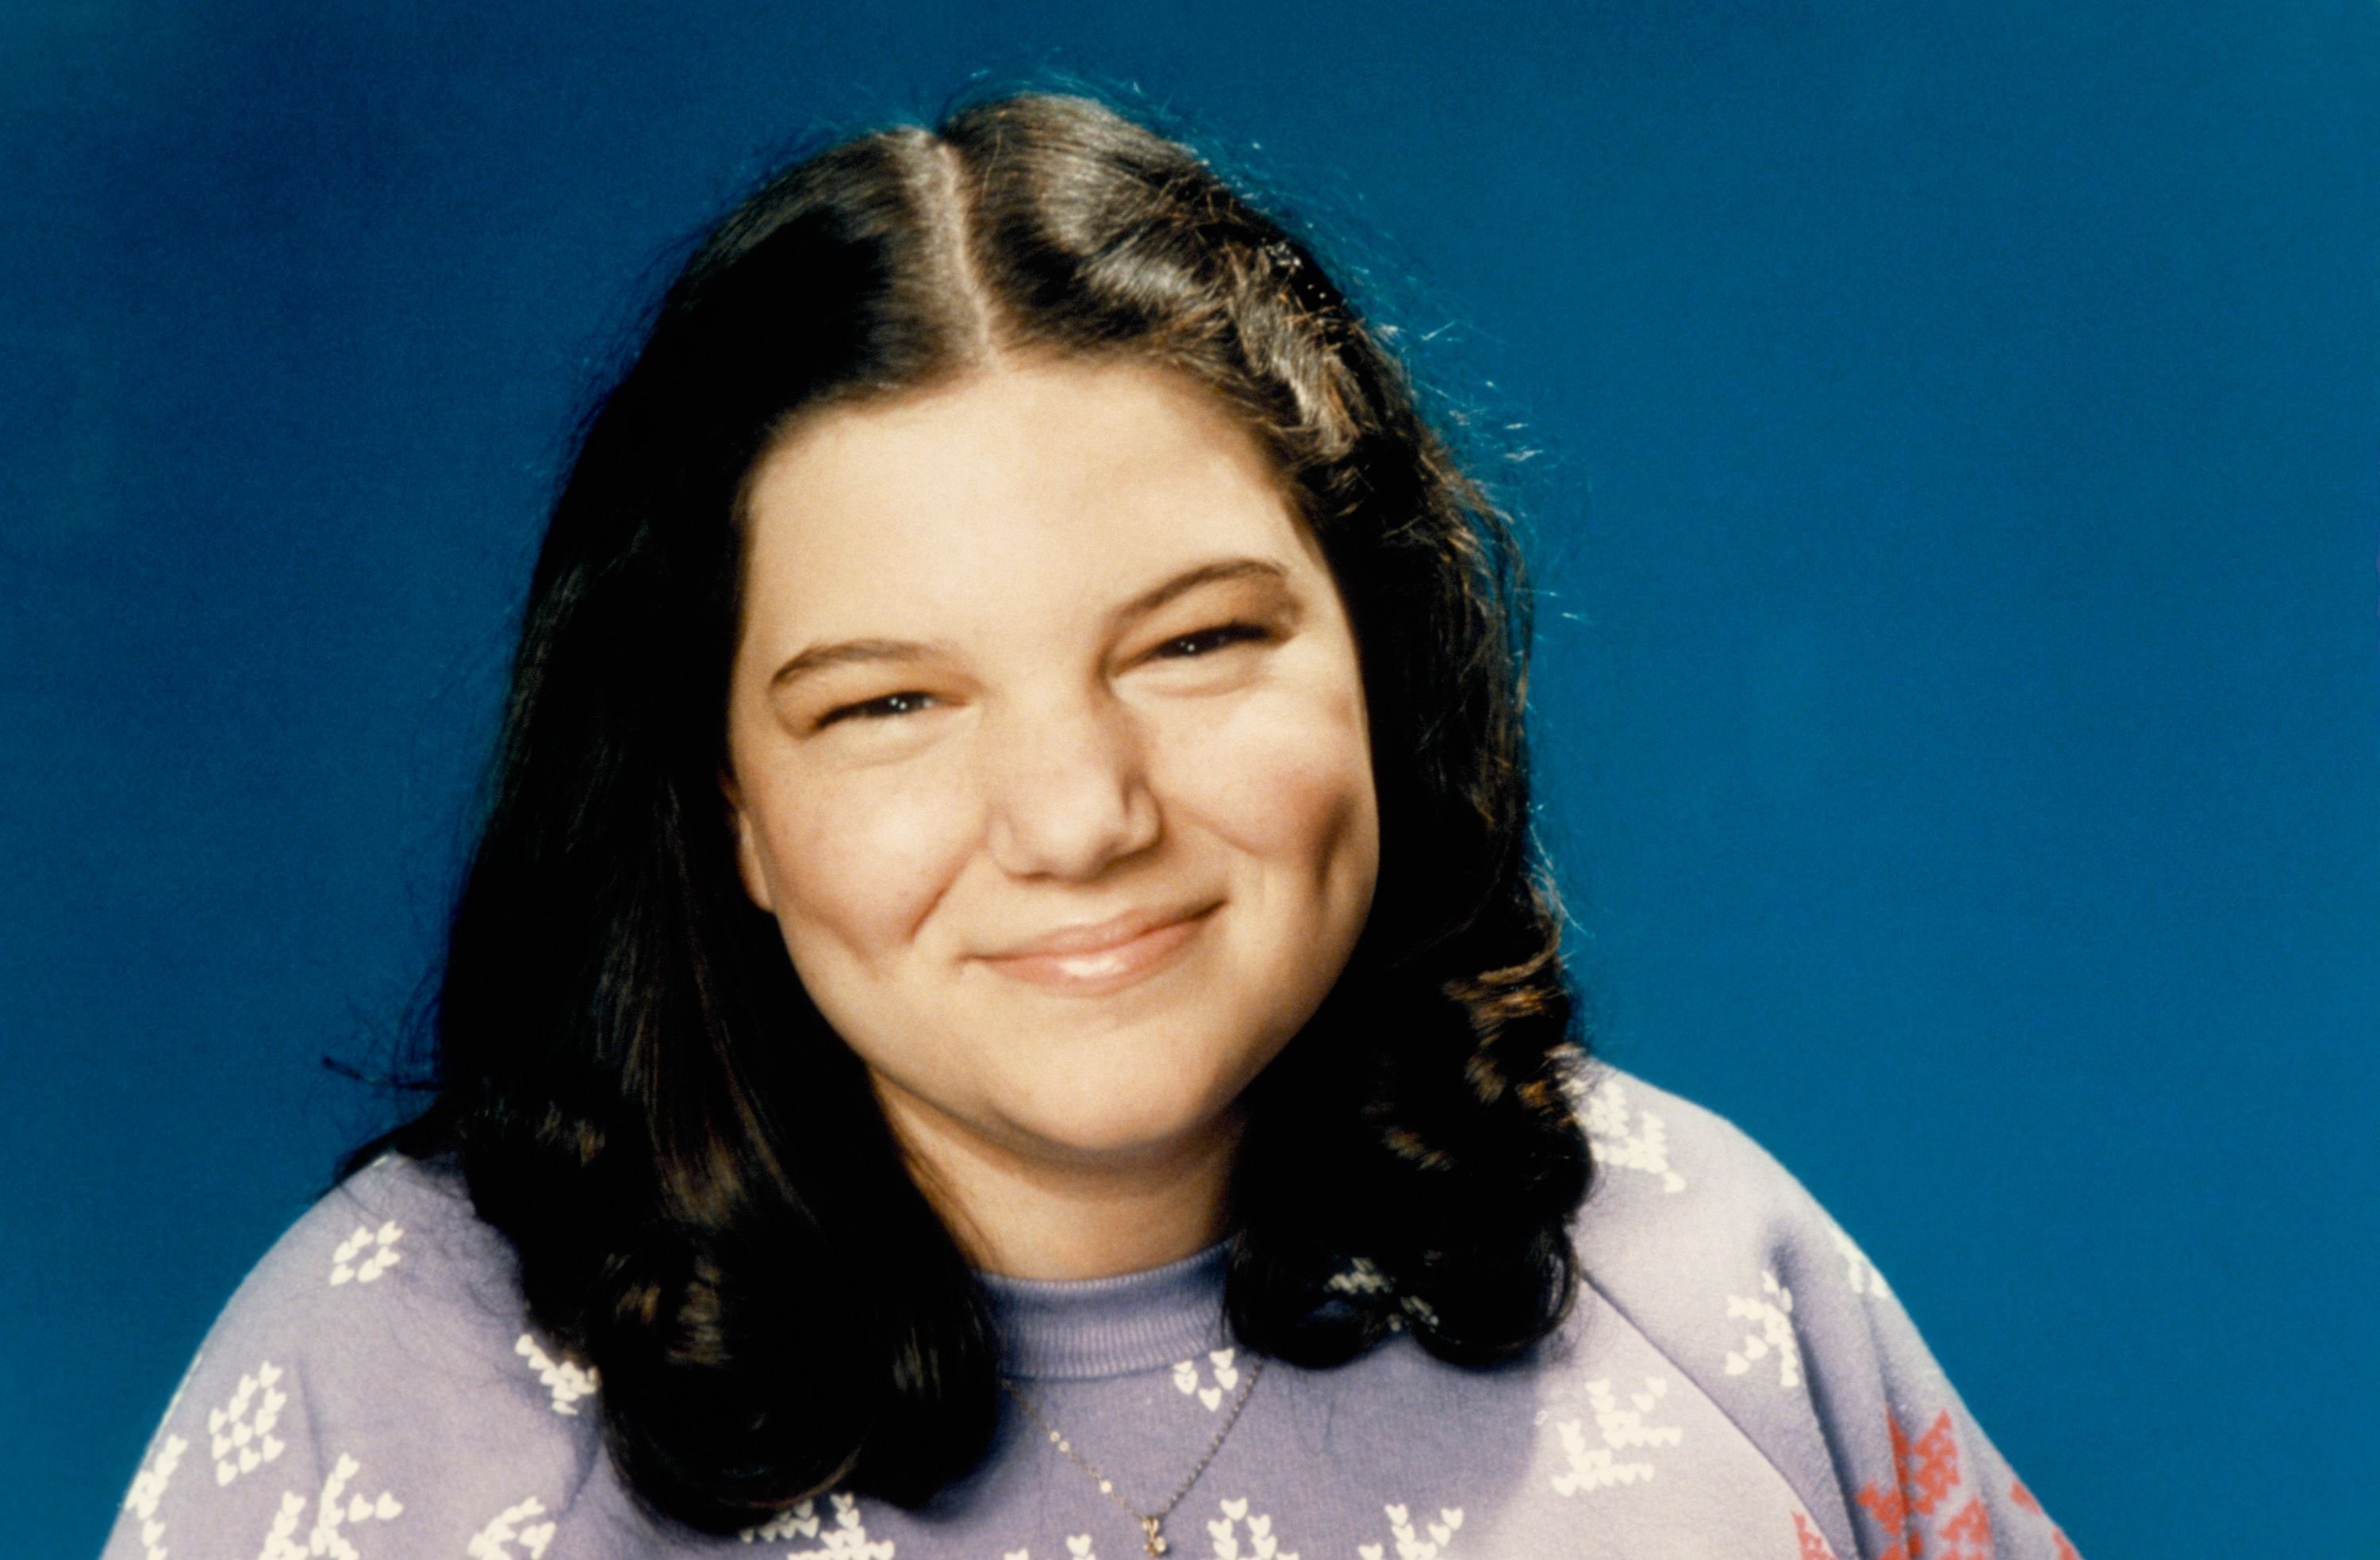 """Mindy Cohn as Natalie Letisha Sage Green on season 2 of """"The Facts of Life"""" 